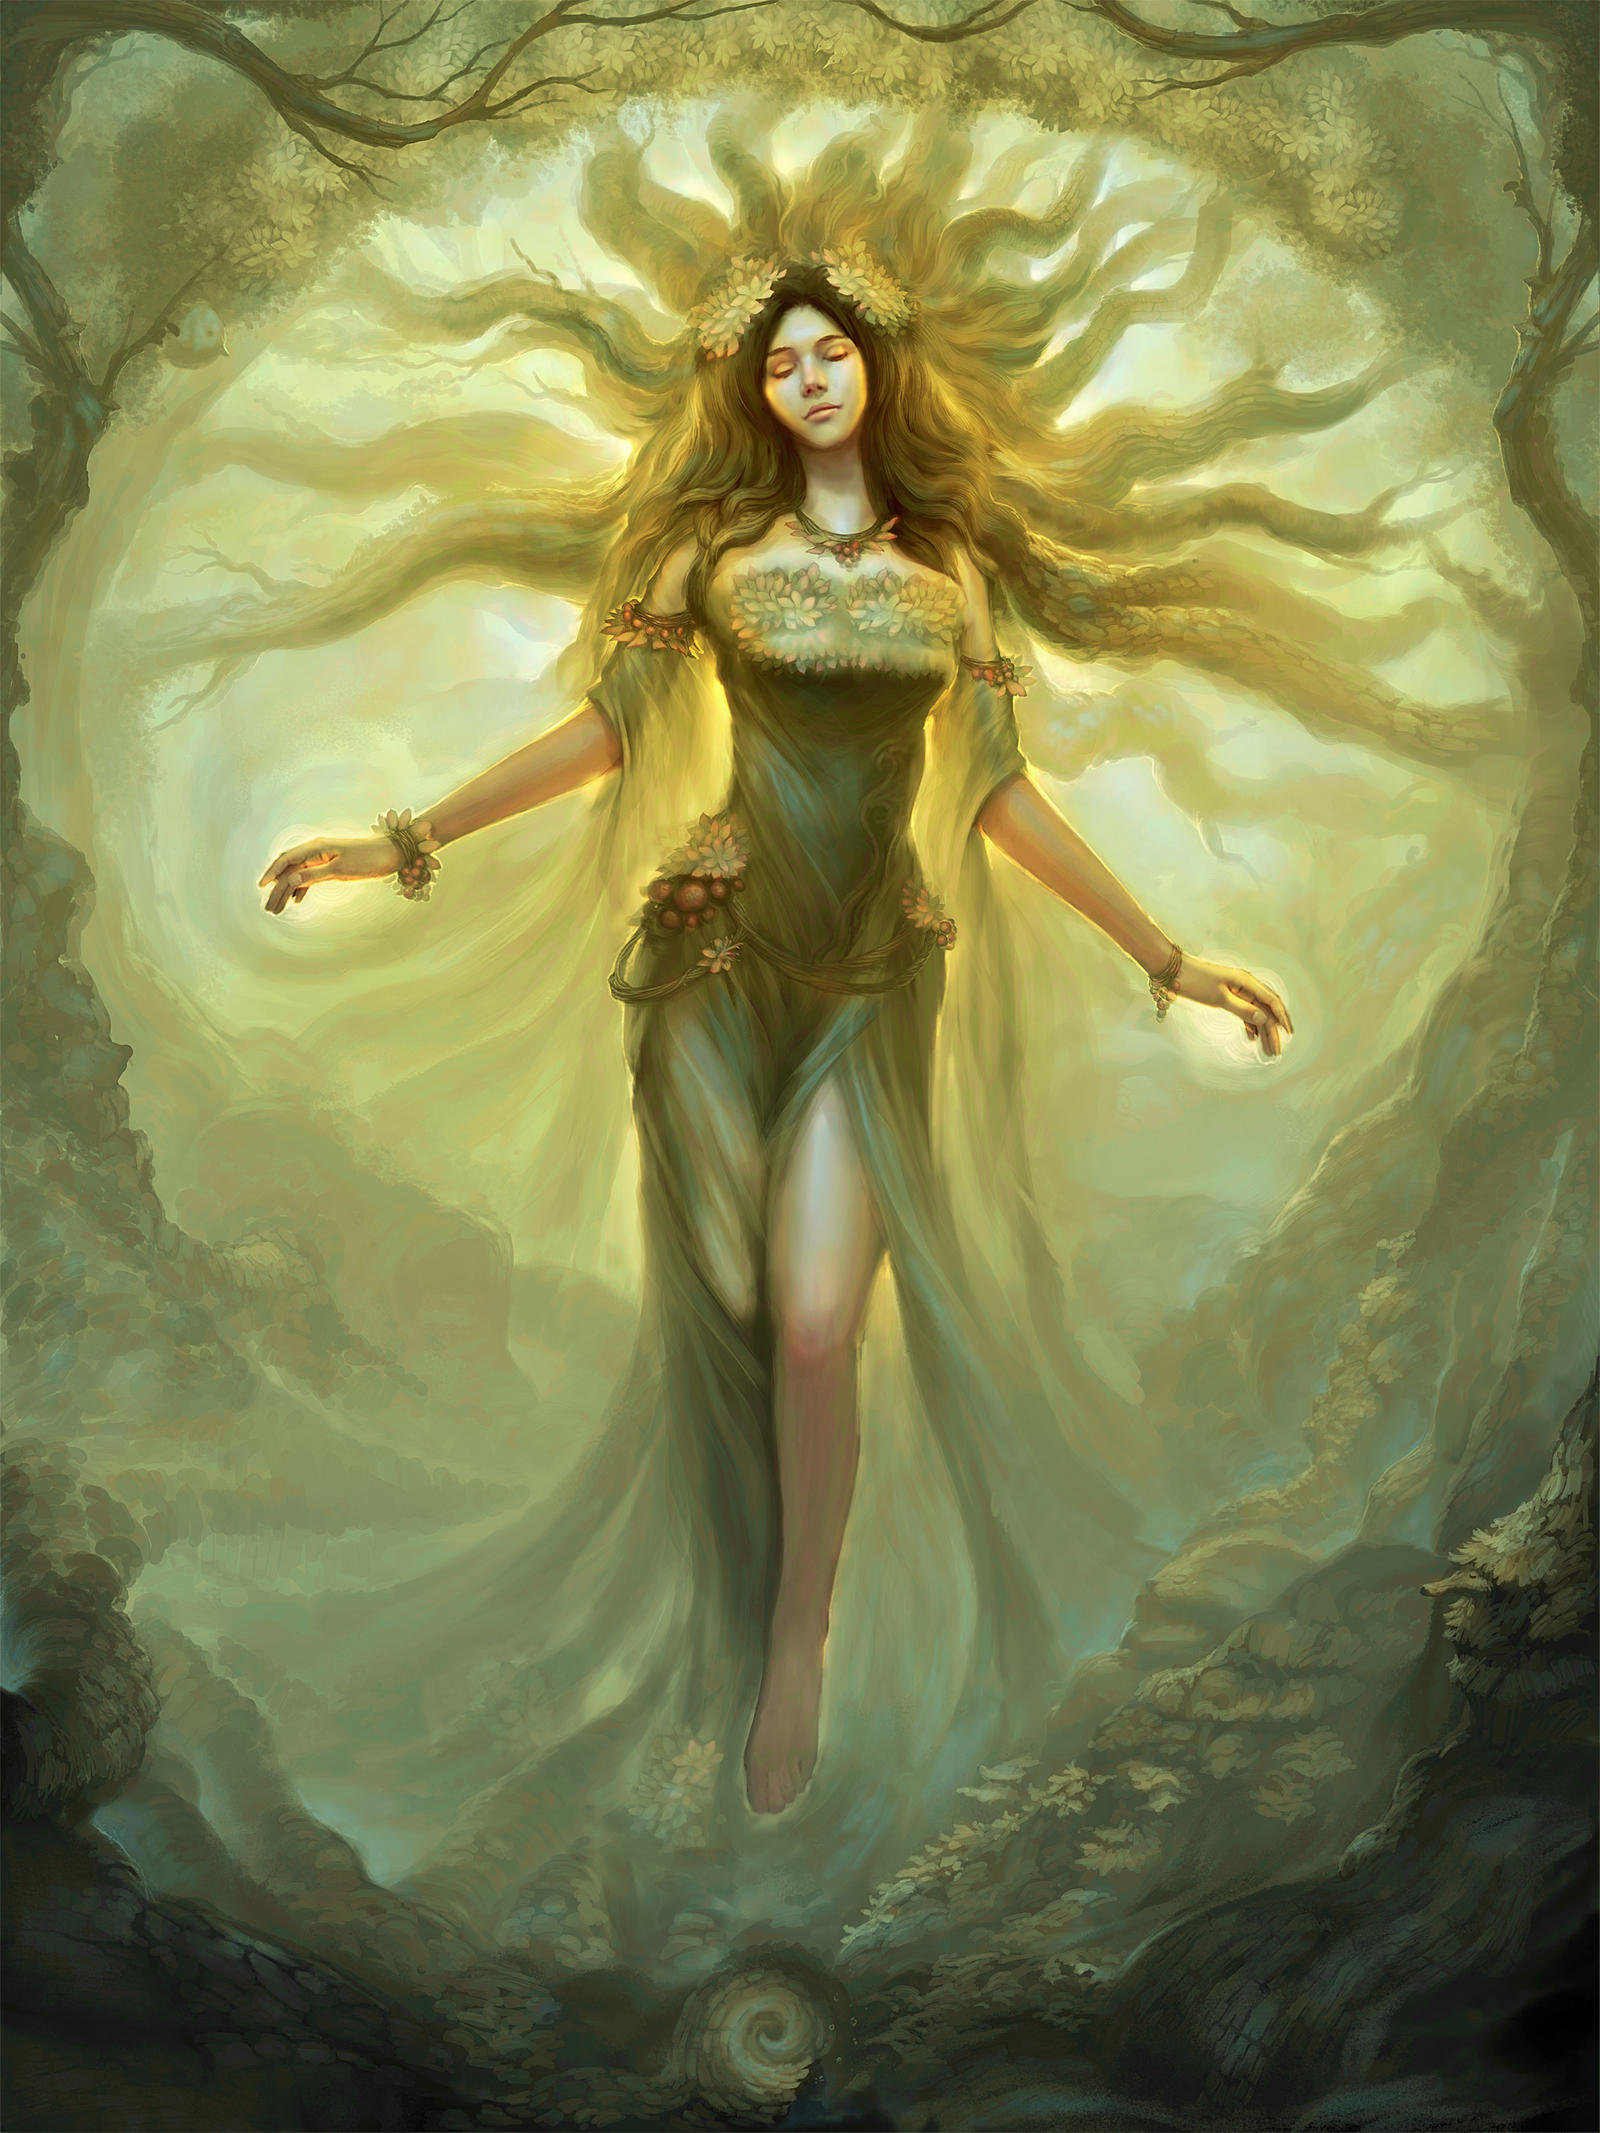 Mother Nature by cyl1981 on DeviantArt